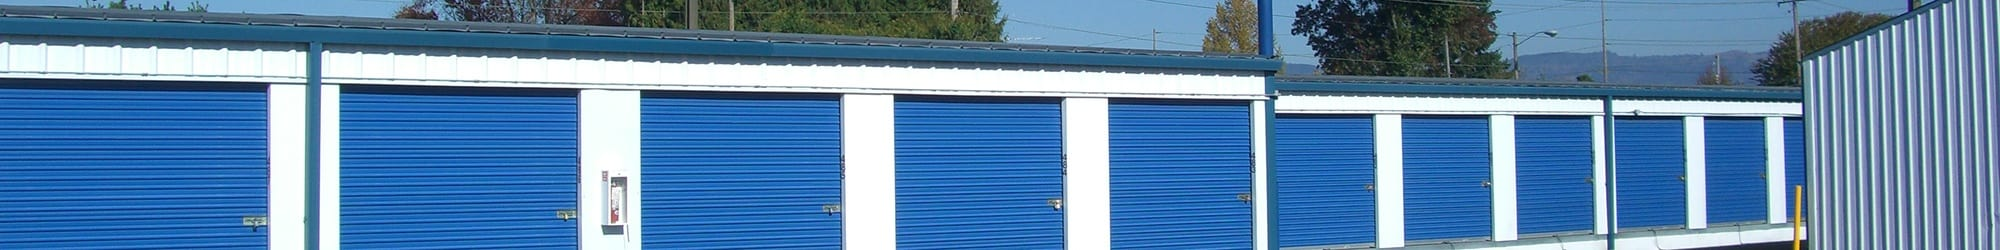 Find out what our storage units in Eugene have to offer